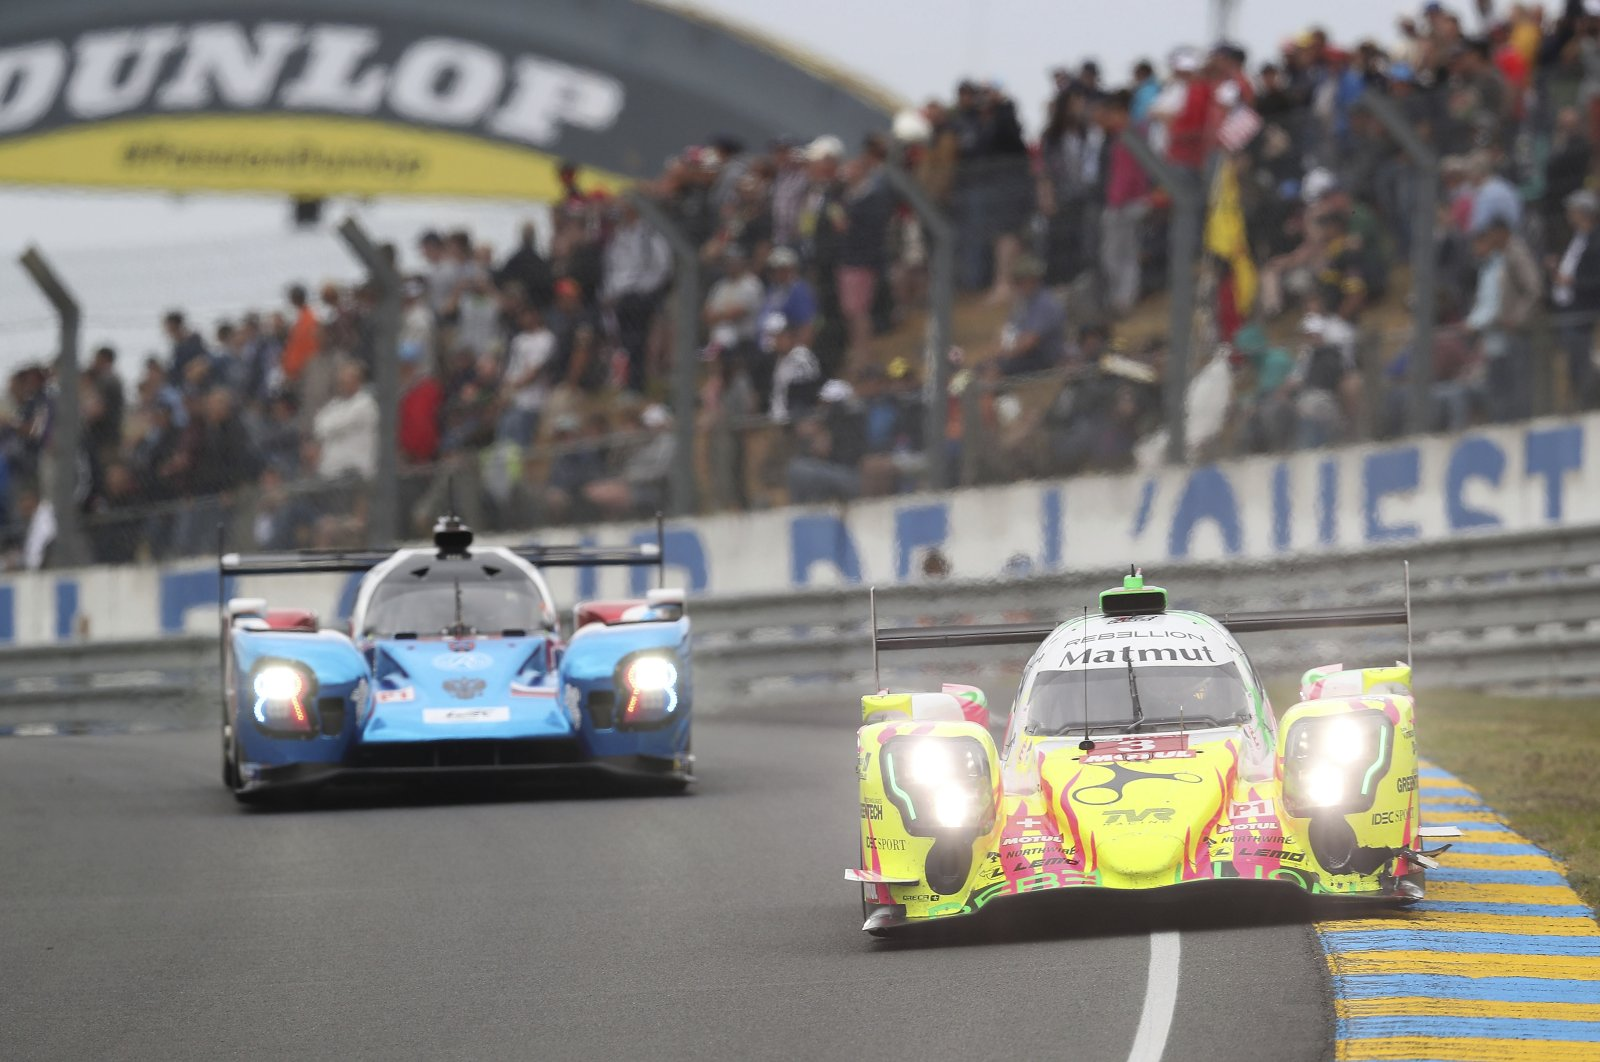 Rebellion Racing Team driven by Thomas Laurent, Nathanael Berthon and Gustavo Menezes in action during the 87th 24-hour Le Mans endurance race, in Le Mans, France, June 15, 2019. (AP Photo)